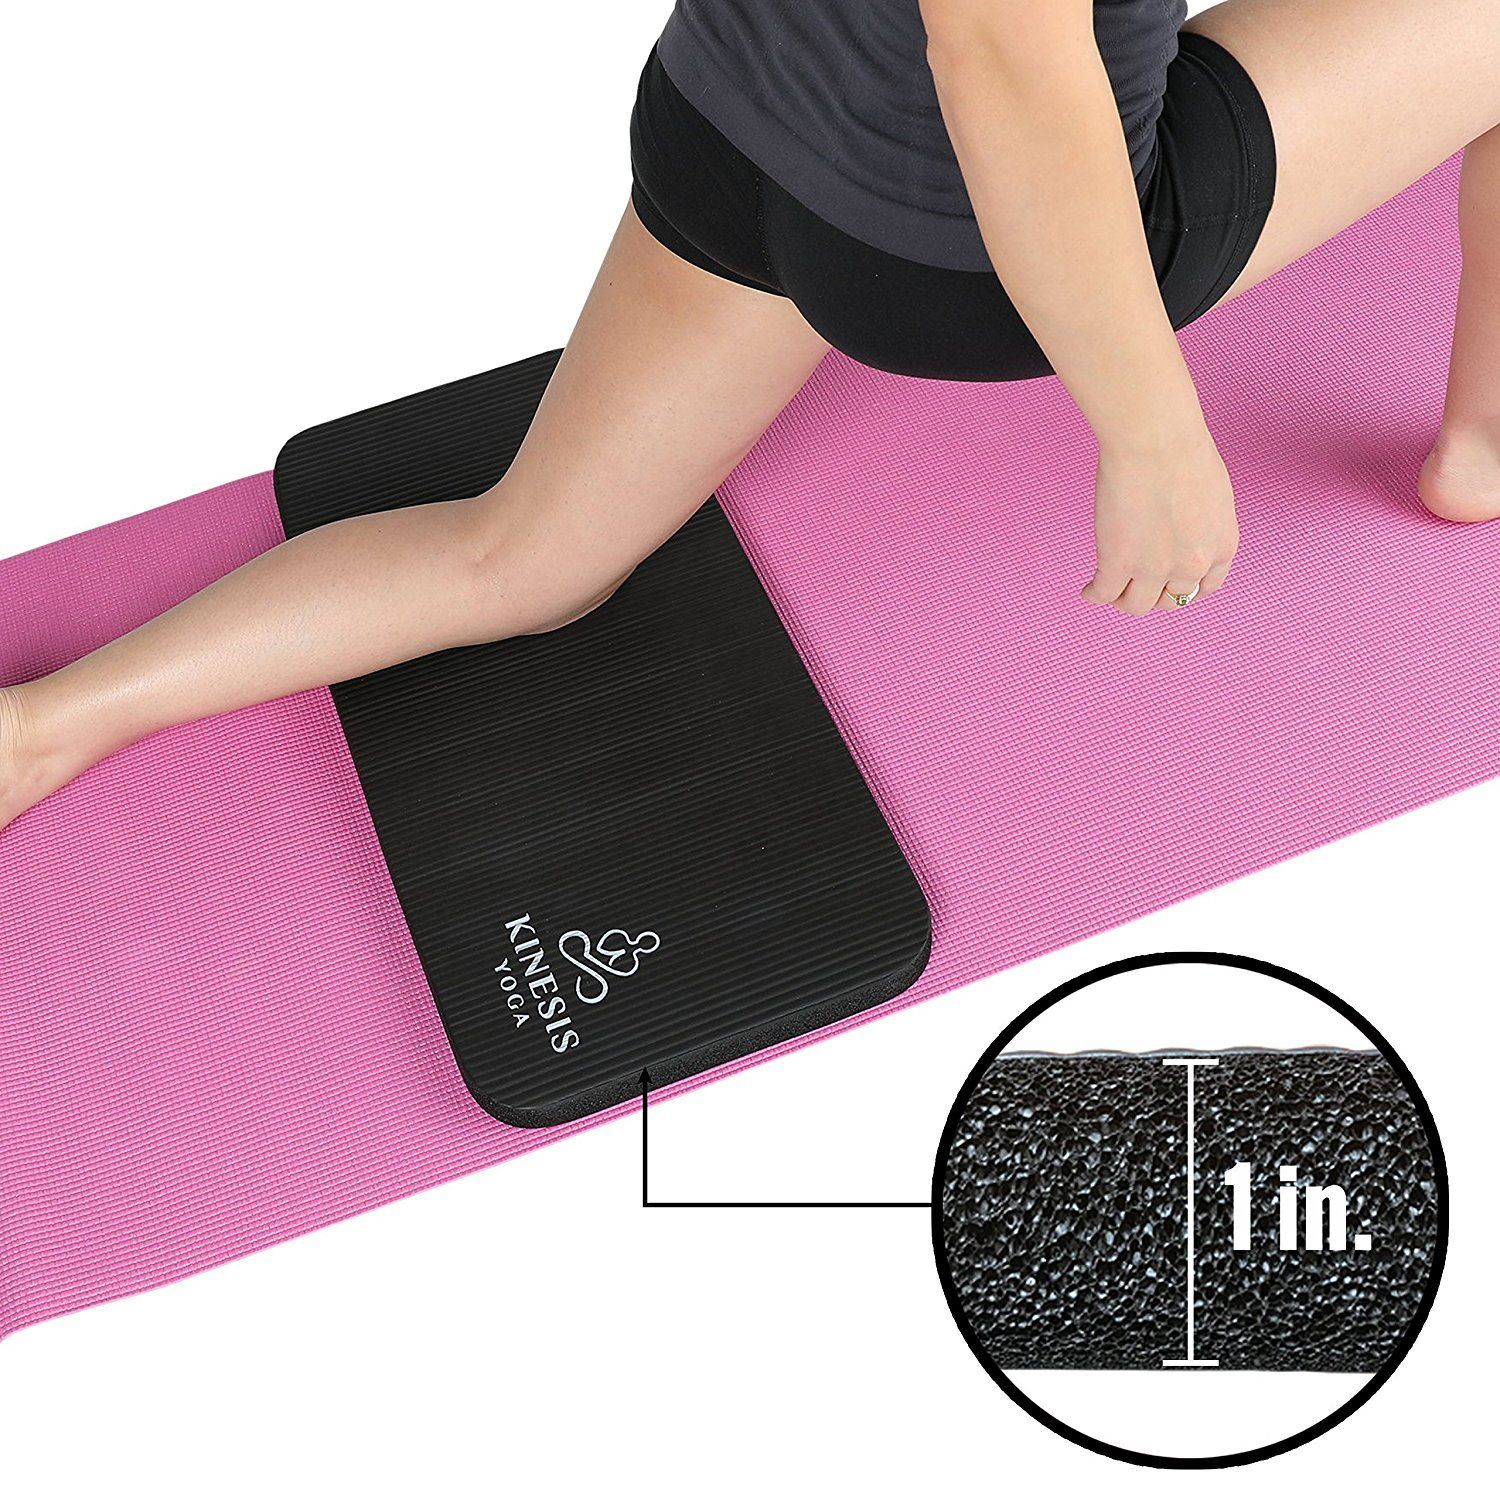 Kinesis Yoga Knee Pad Cushion Extra Thick 1 W Free Bag You Can Find More Details By Visiting The Image Link This Is An Af Yoga Pad Knee Pads Free Bag